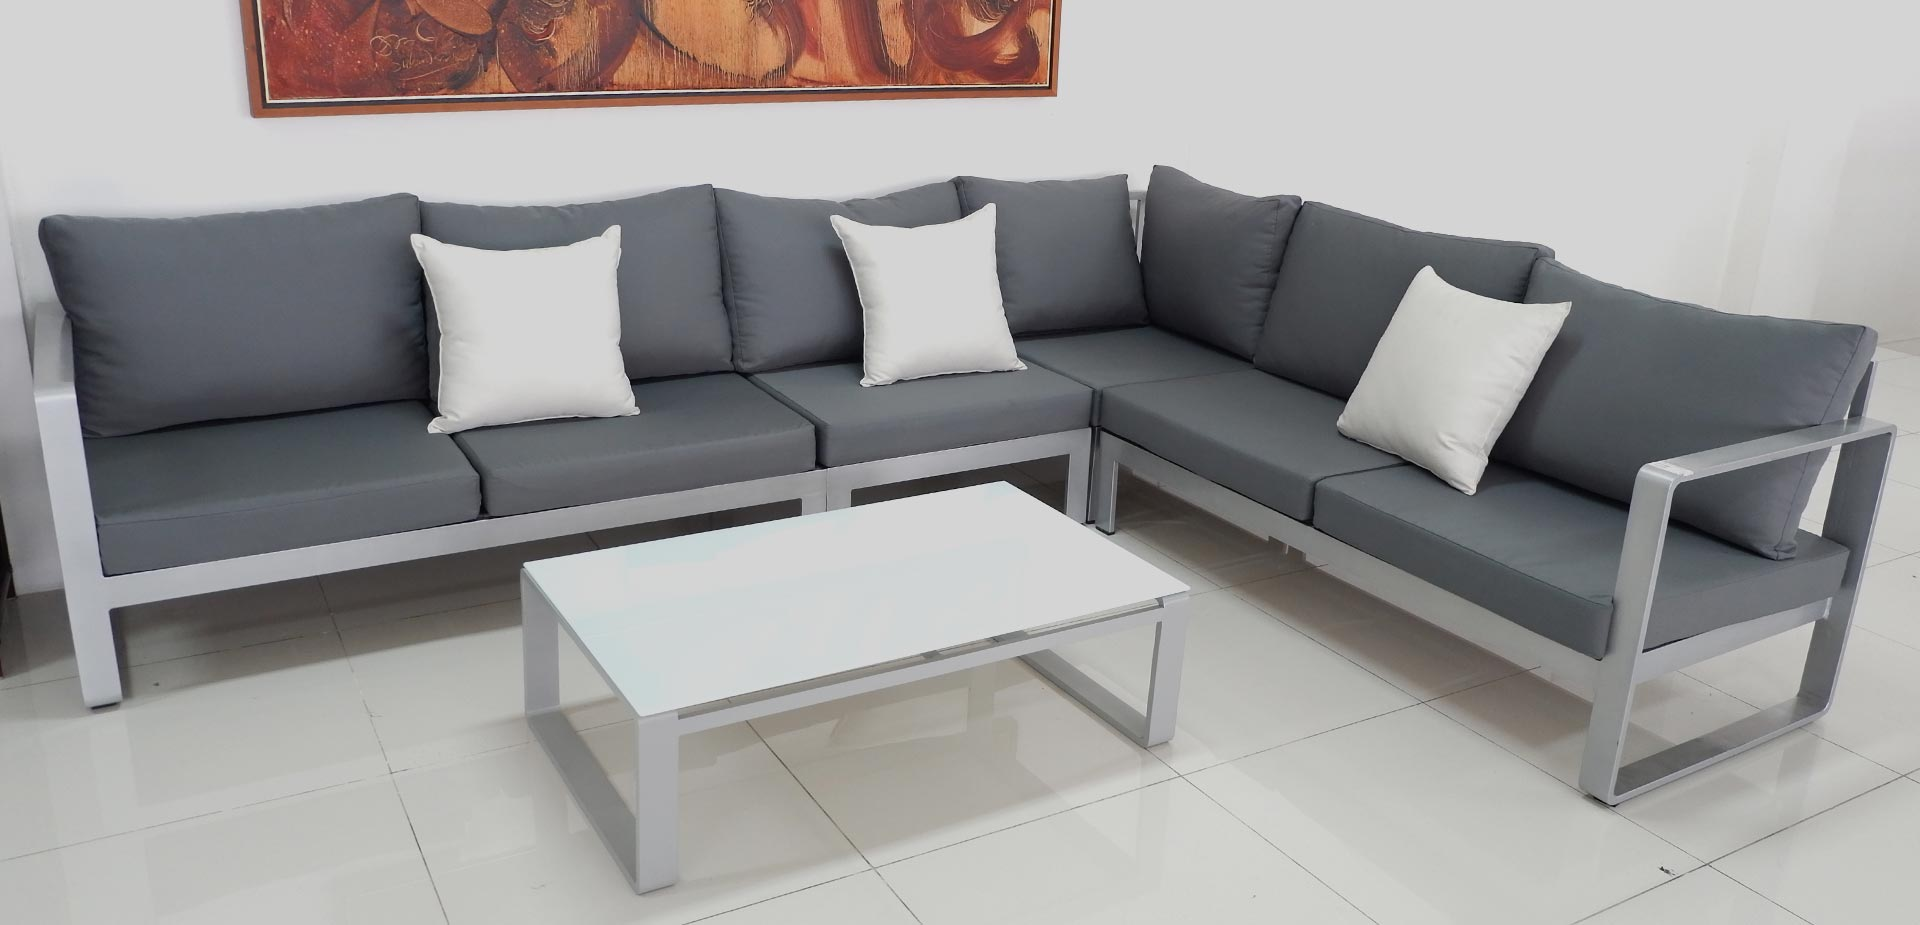 alcomex-indo-aluminium-laquer-furniture-extrusion-finished-goods-furniture